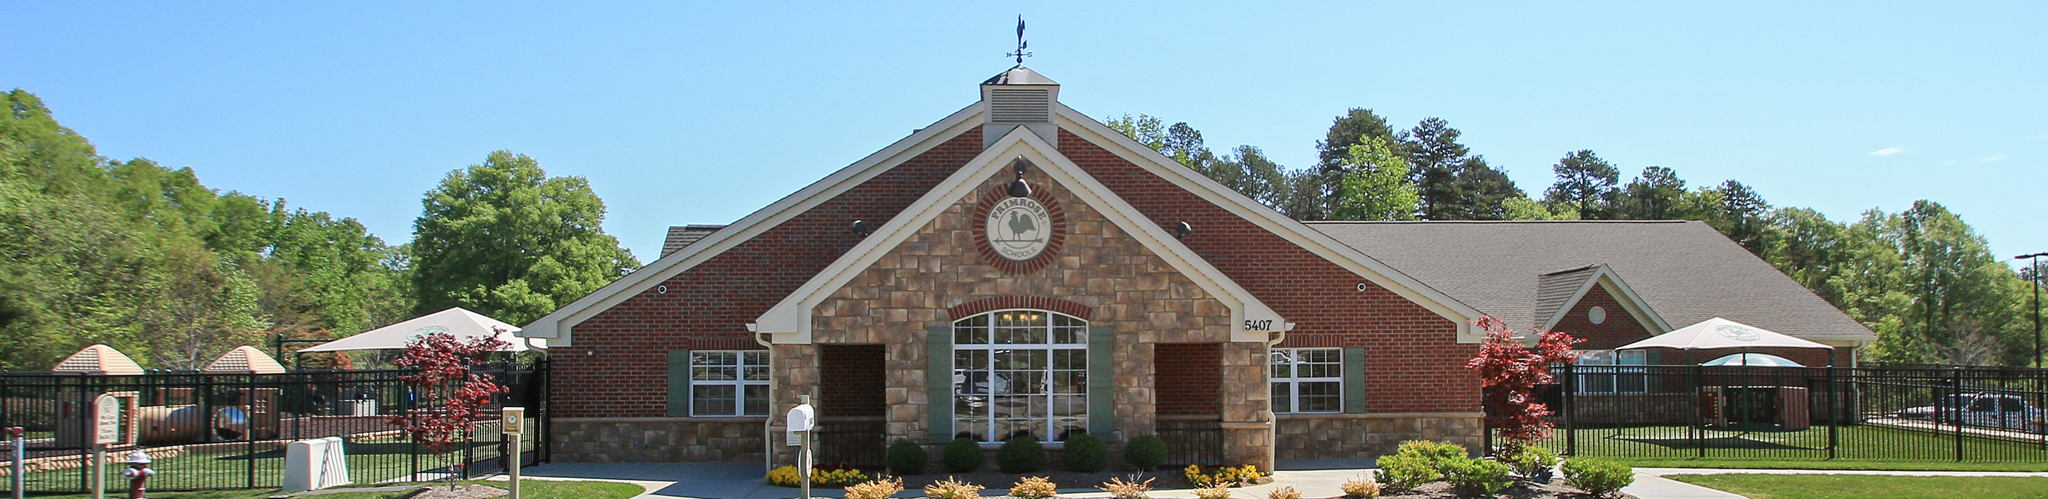 Exterior of a Primrose School at Austin Village